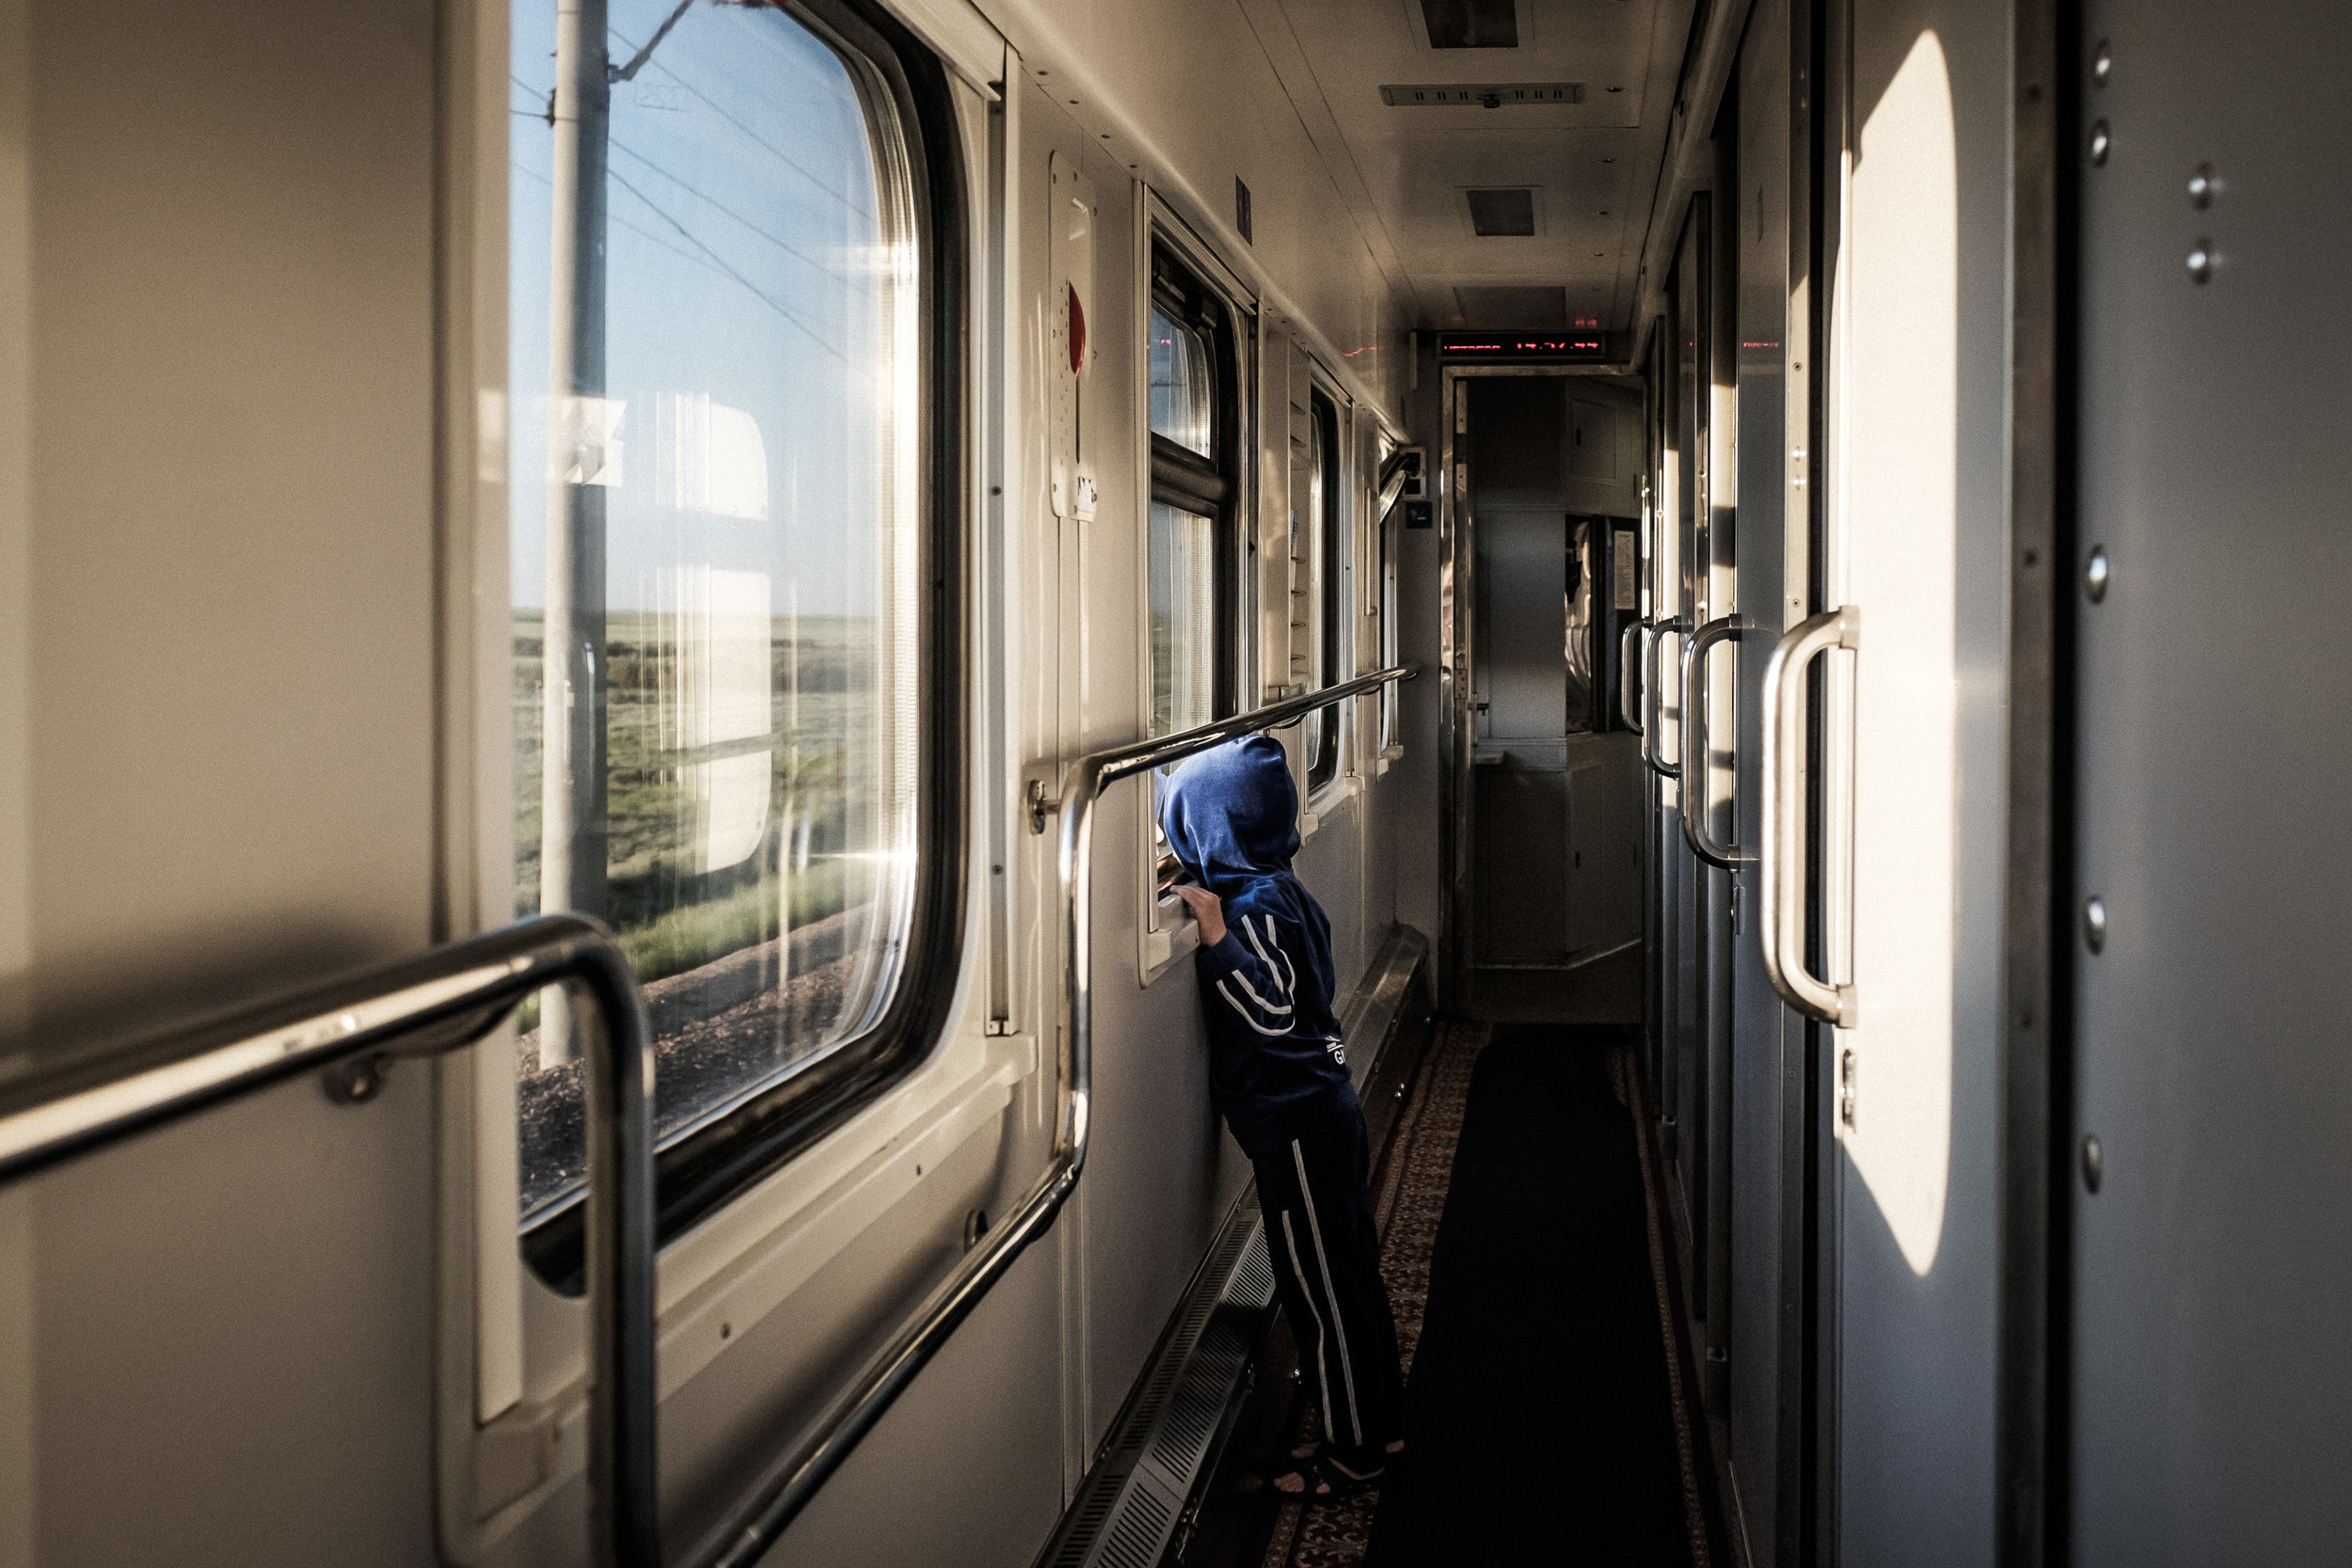 On the train from Astana to Almaty. Distance 1300 km, travel time app. 20 hours.